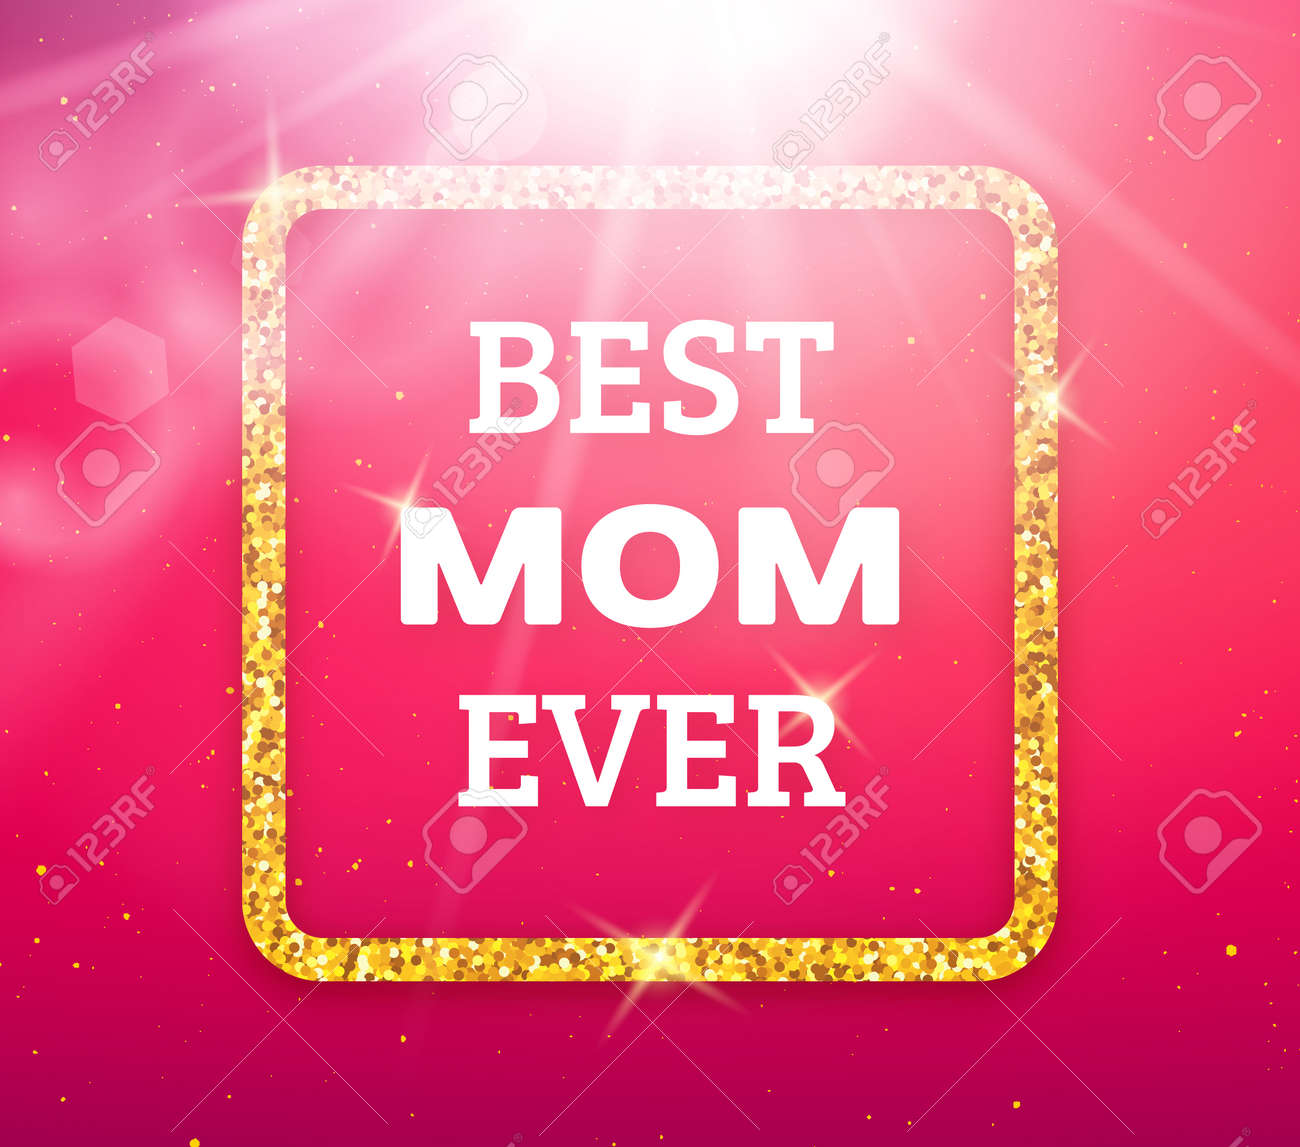 mothers day clipart.html